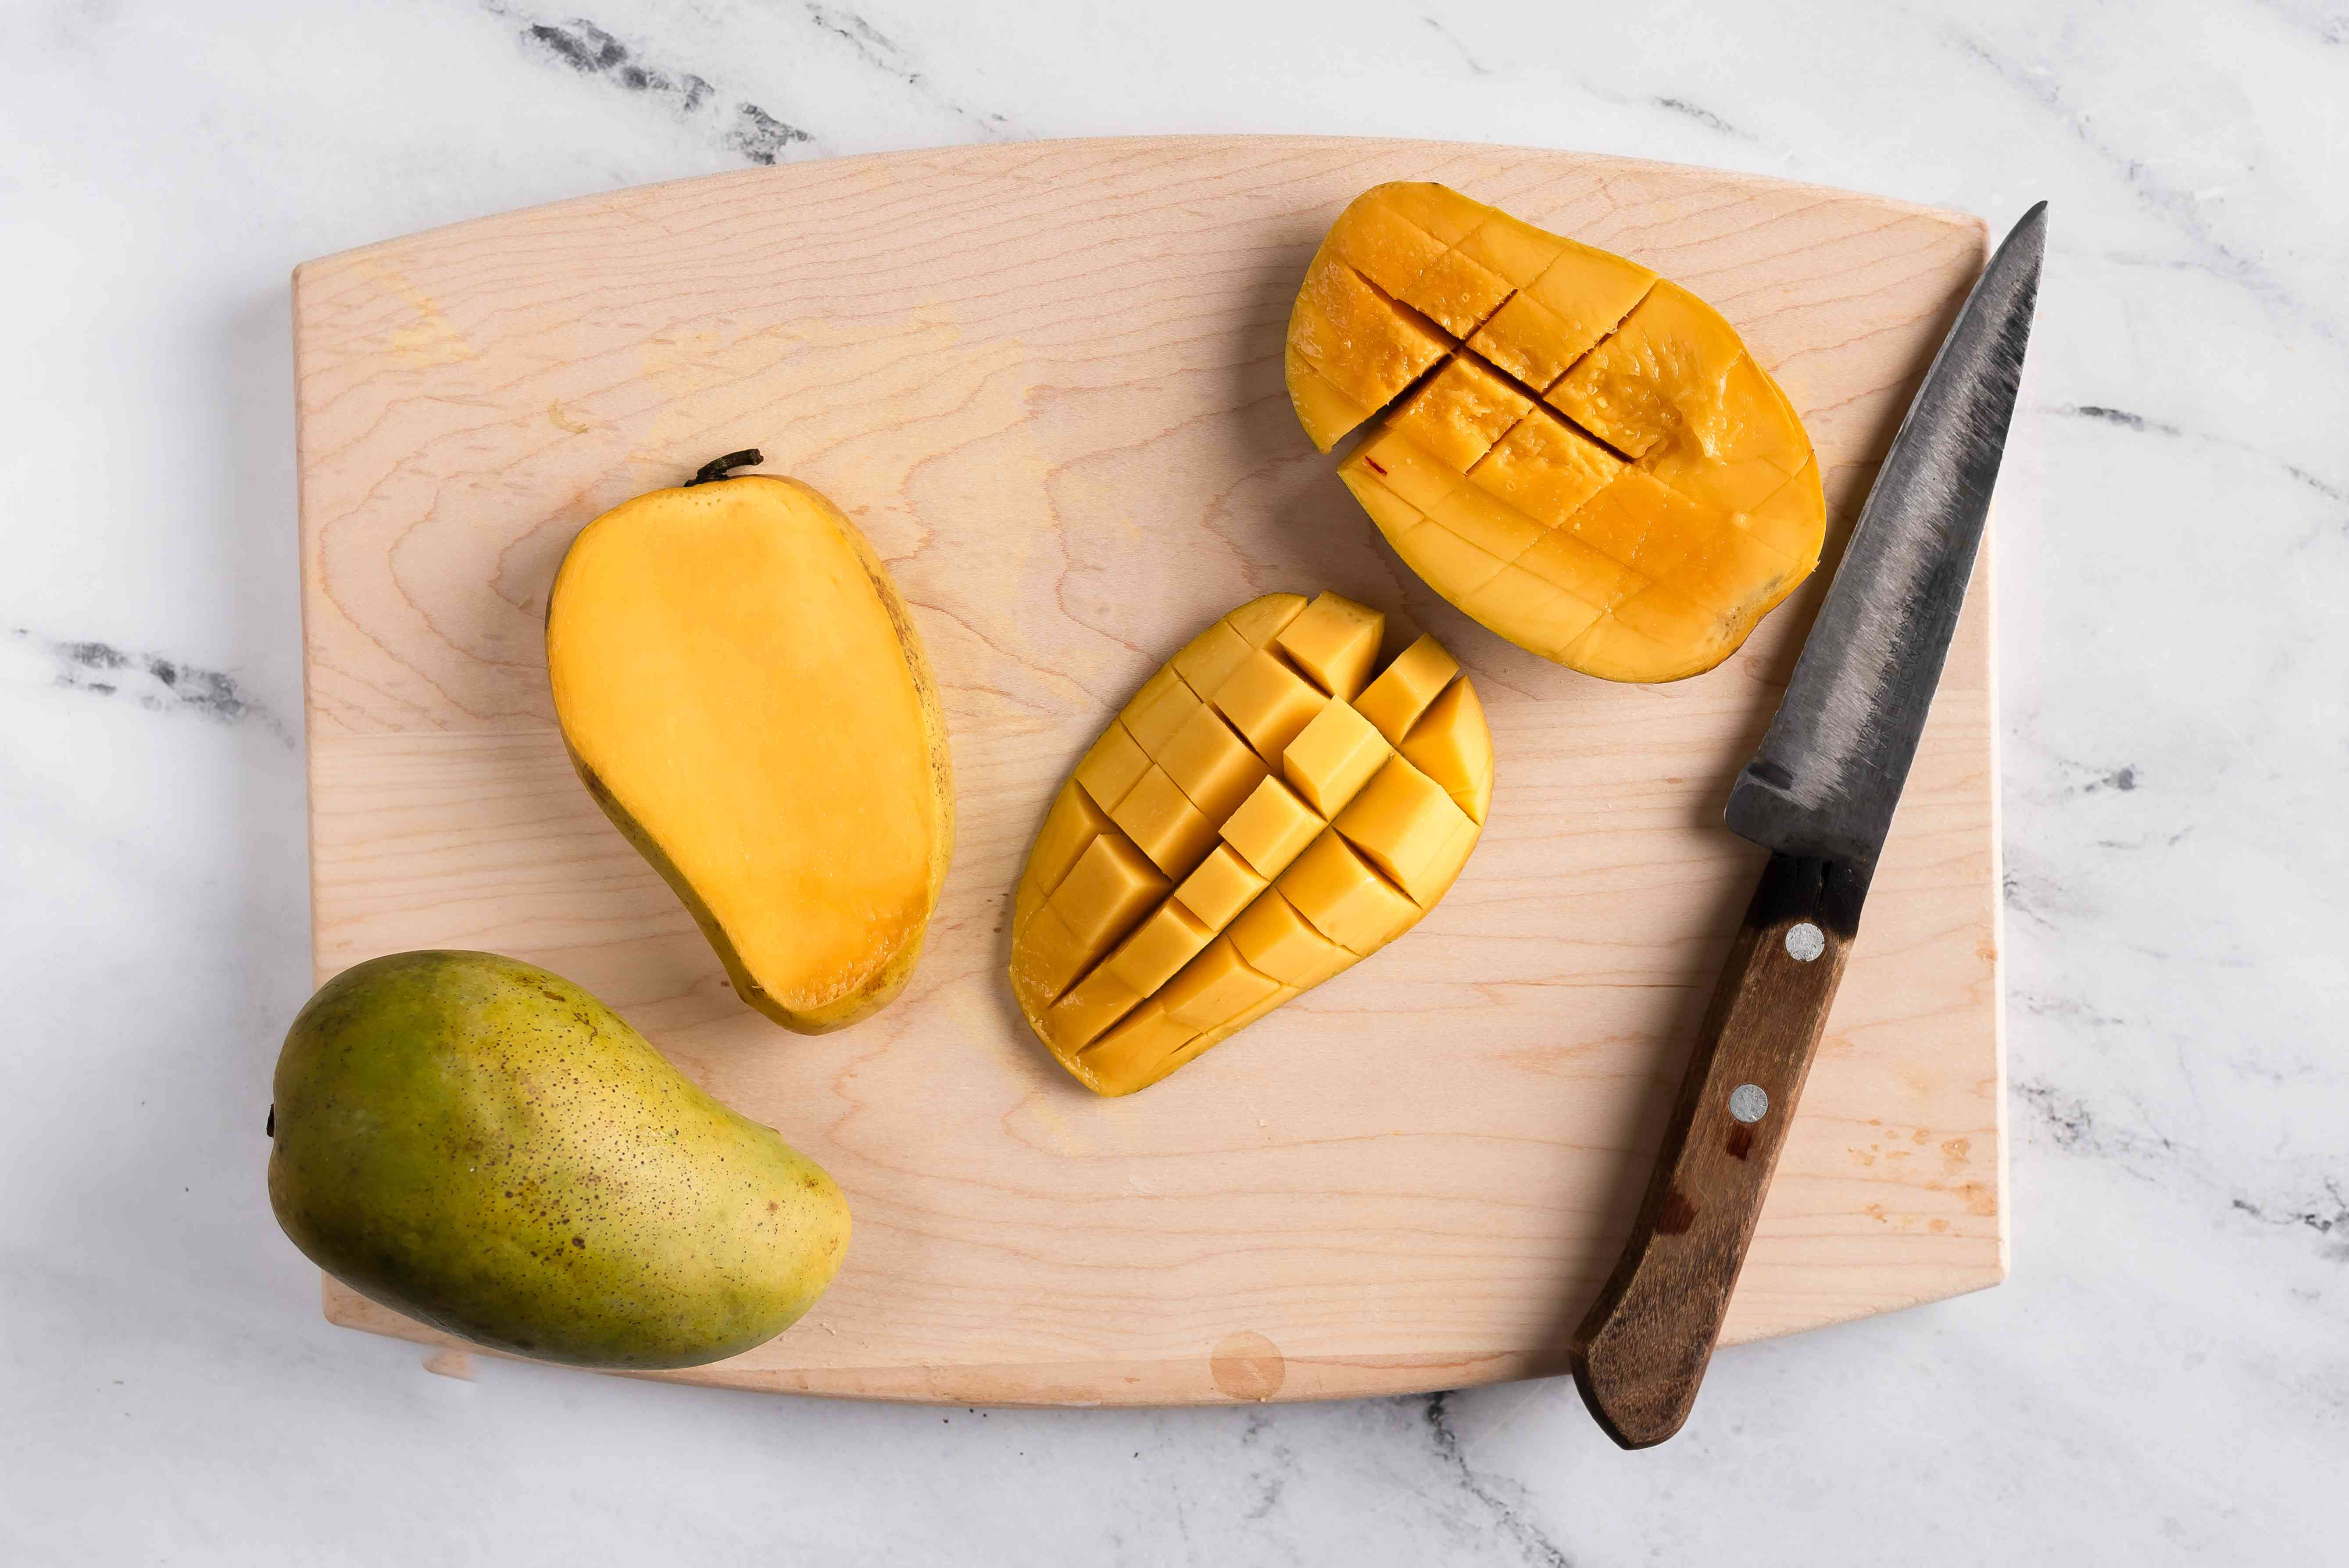 Mangoes scored with a sharp knife on a cutting board